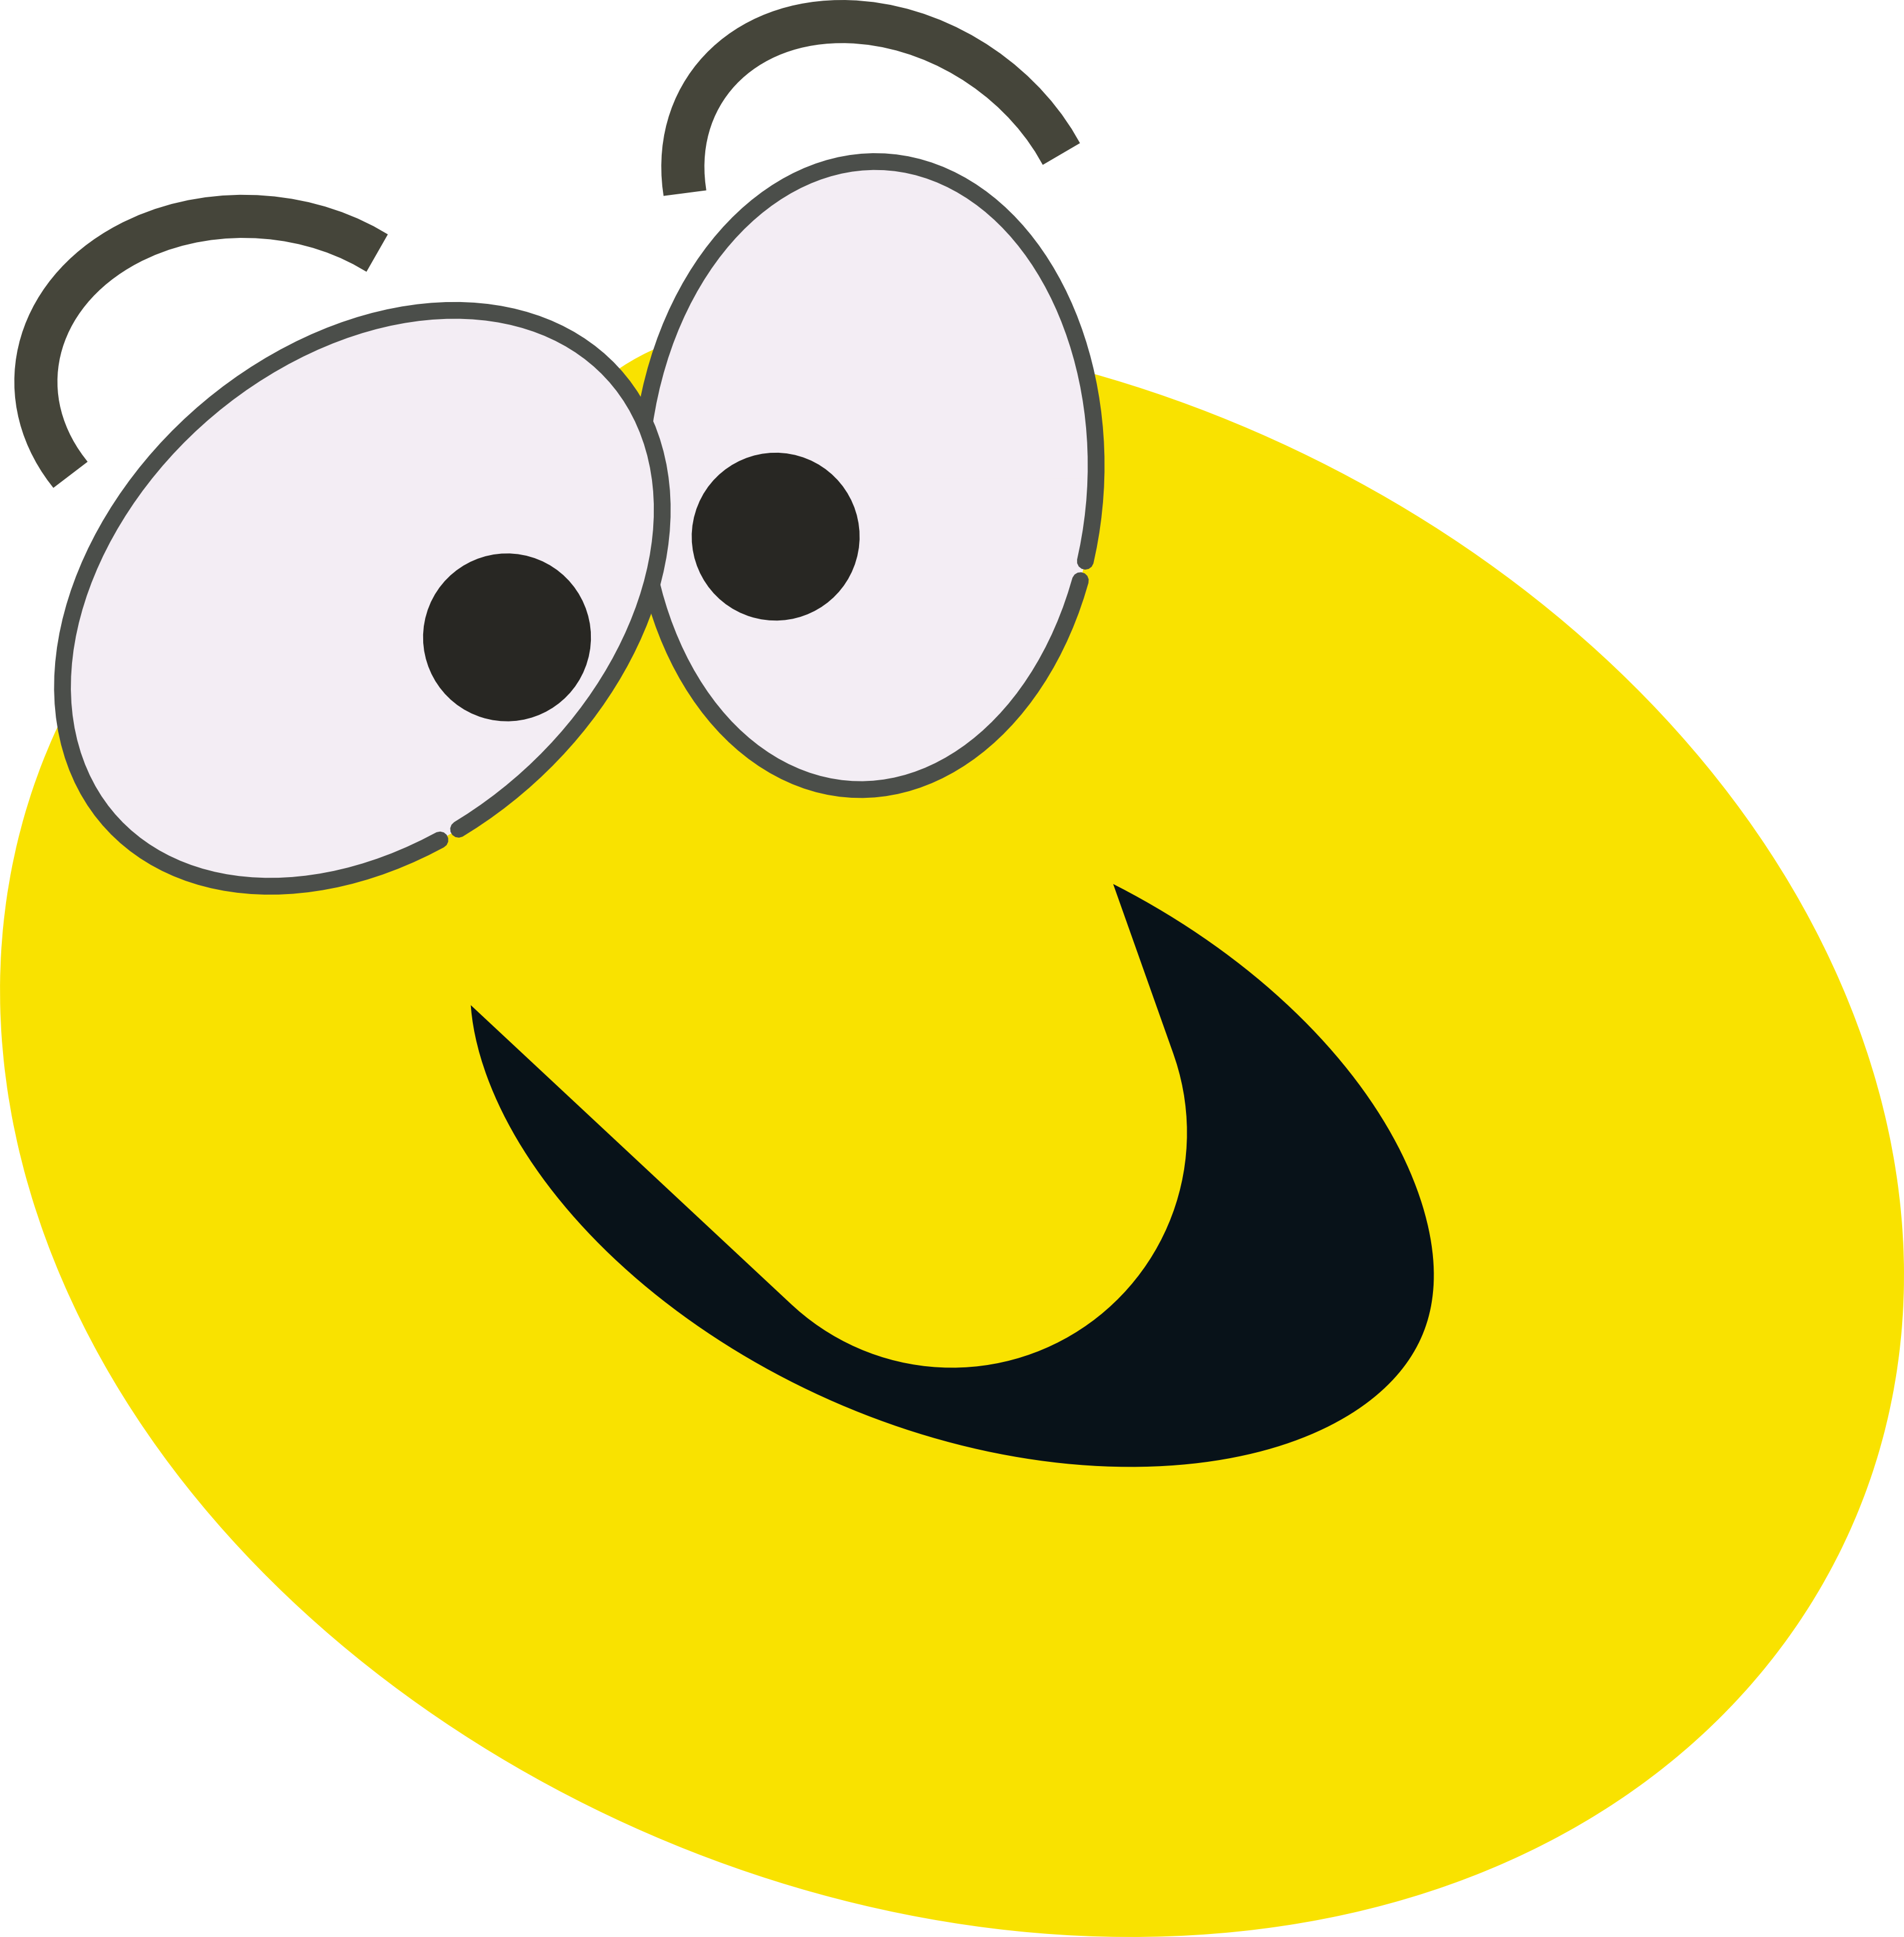 Free funny animated clipart vector transparent download Images Of Smiling Faces Clipart | Free download best Images Of ... vector transparent download